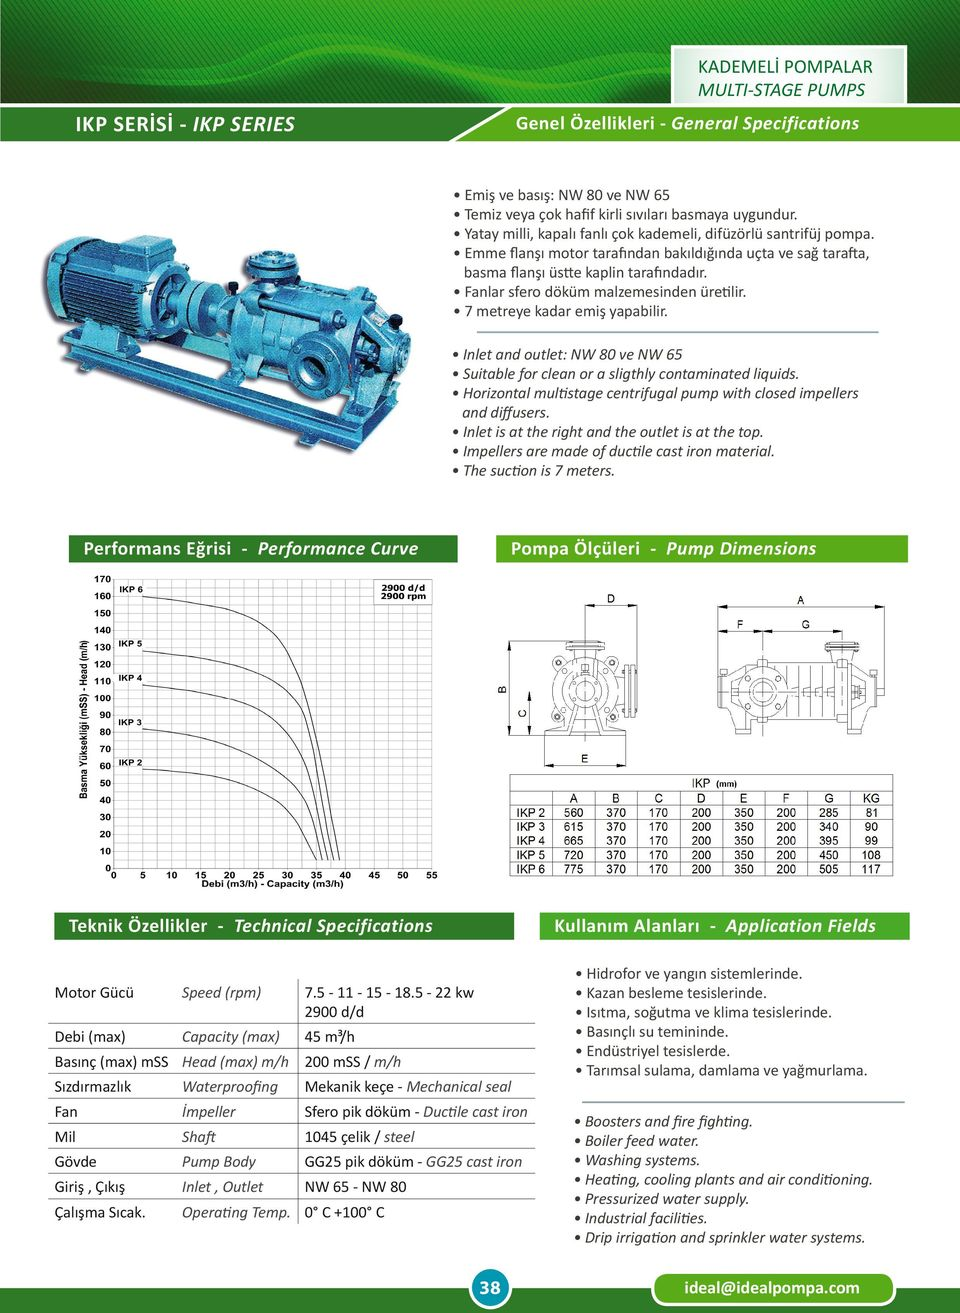 Inlet and outlet: NW 80 ve NW 65 Suitable for clean or a sligthly contaminated liquids. Horizontal multistage centrifugal pump with closed impellers and diffusers.